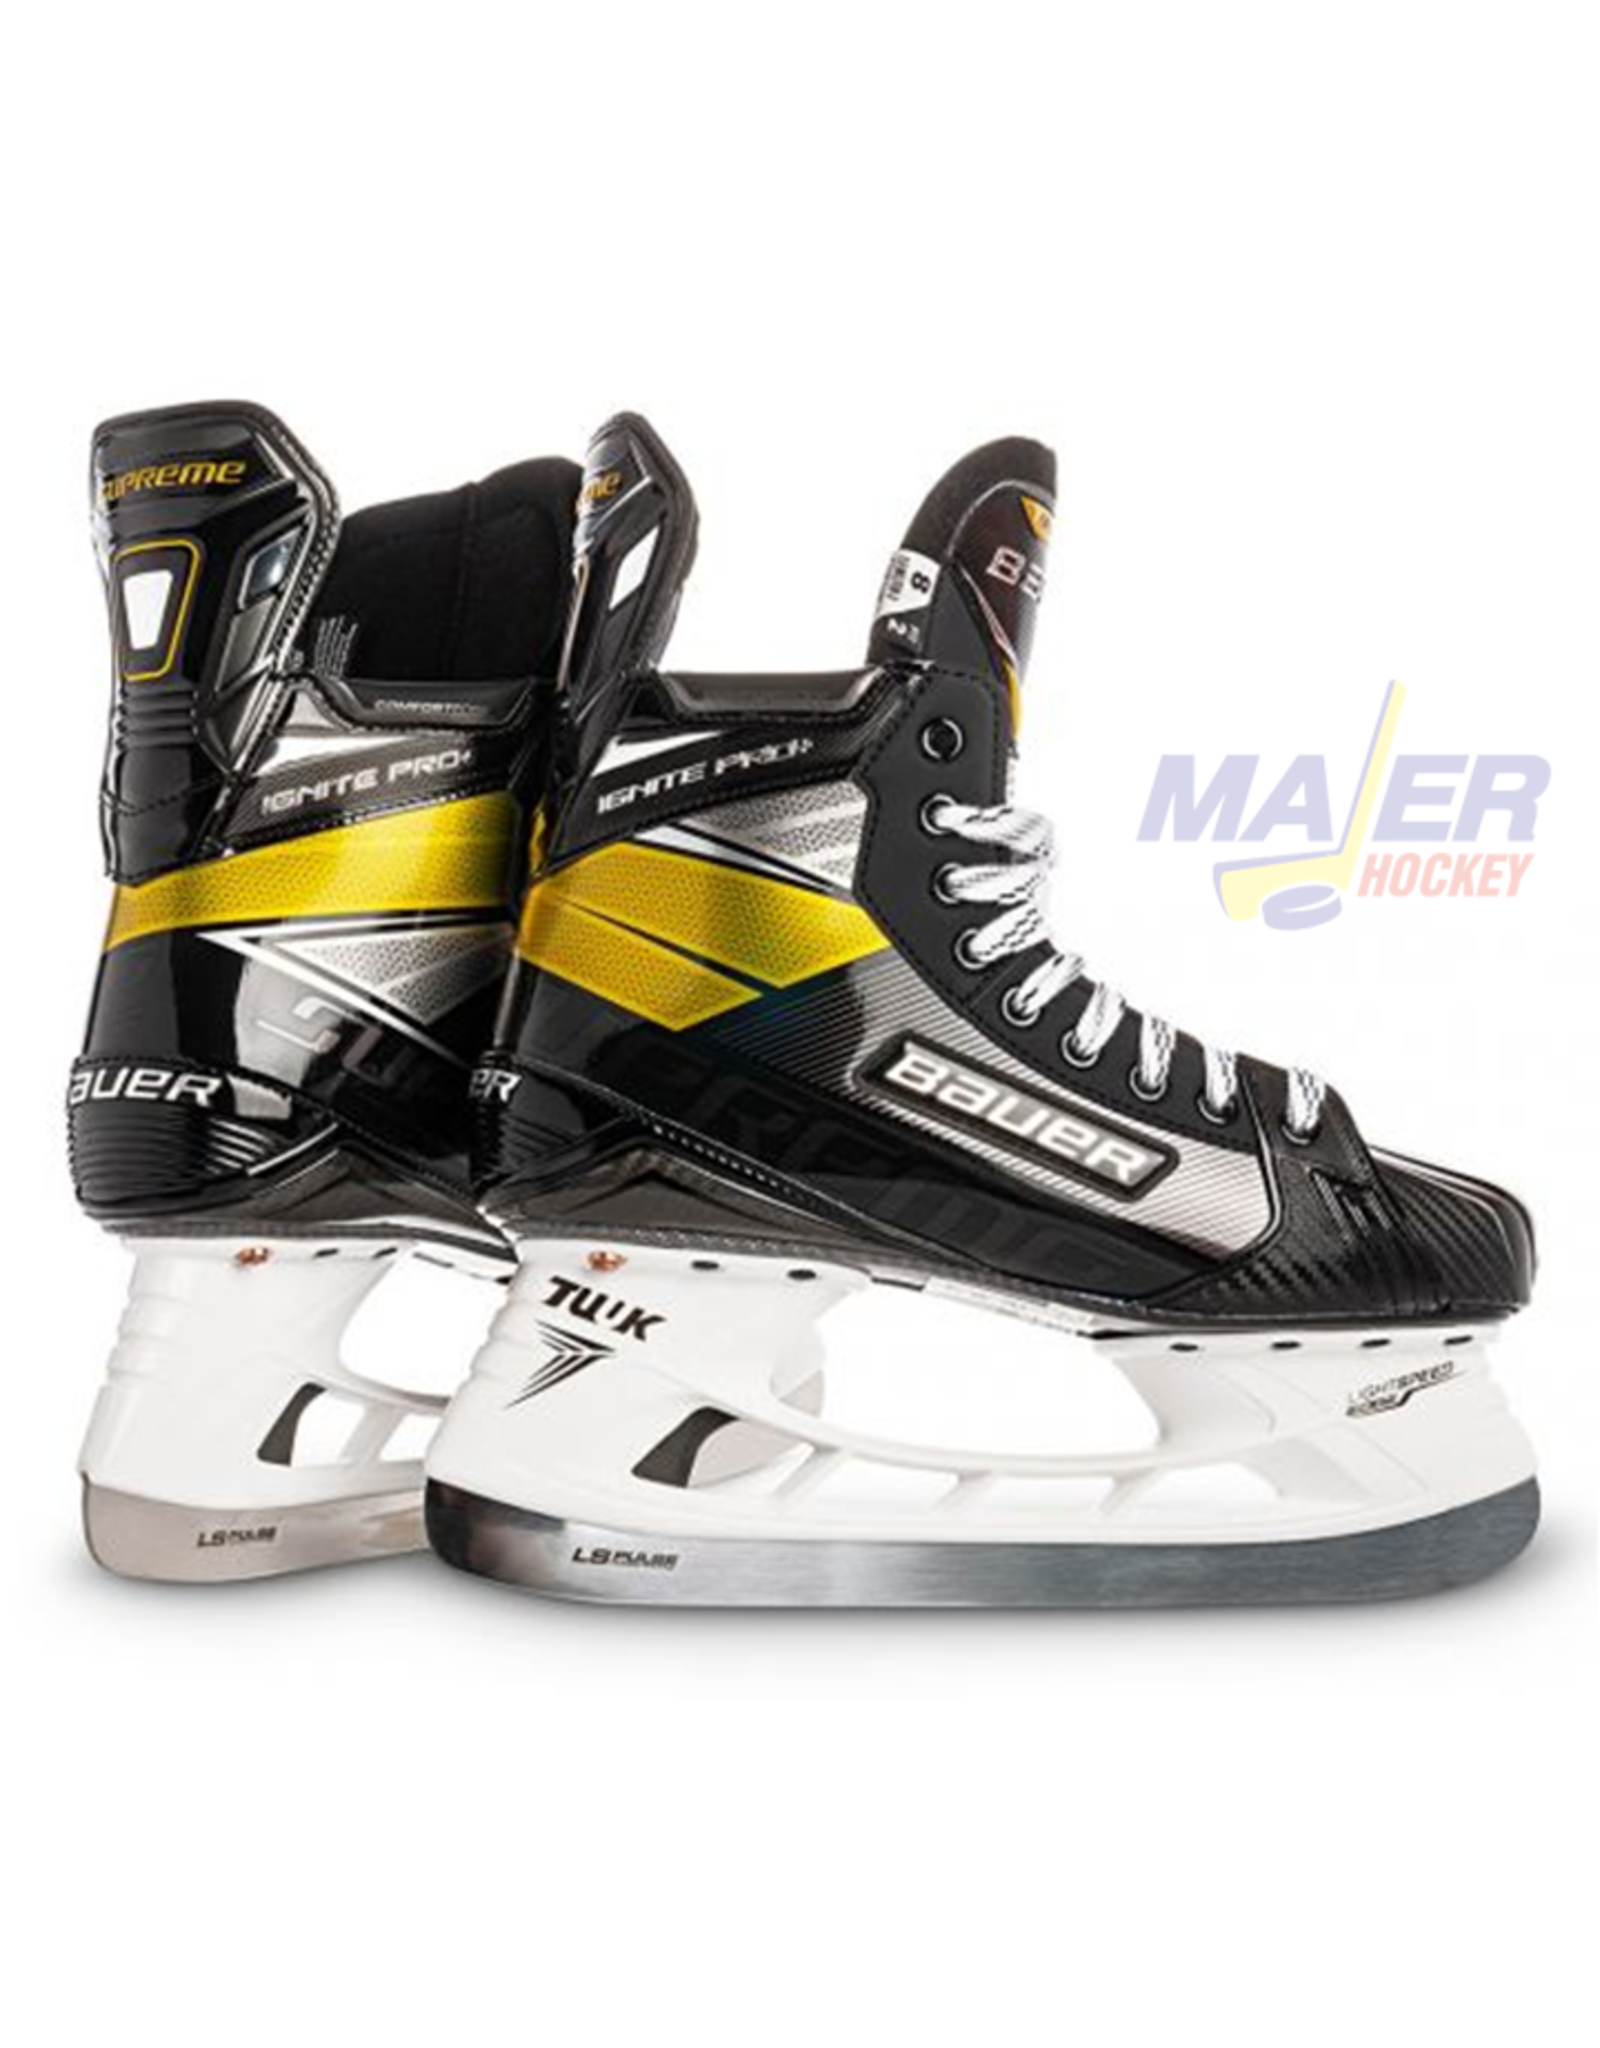 Bauer Supreme Ignite Pro+ Intermediate Hockey Skates